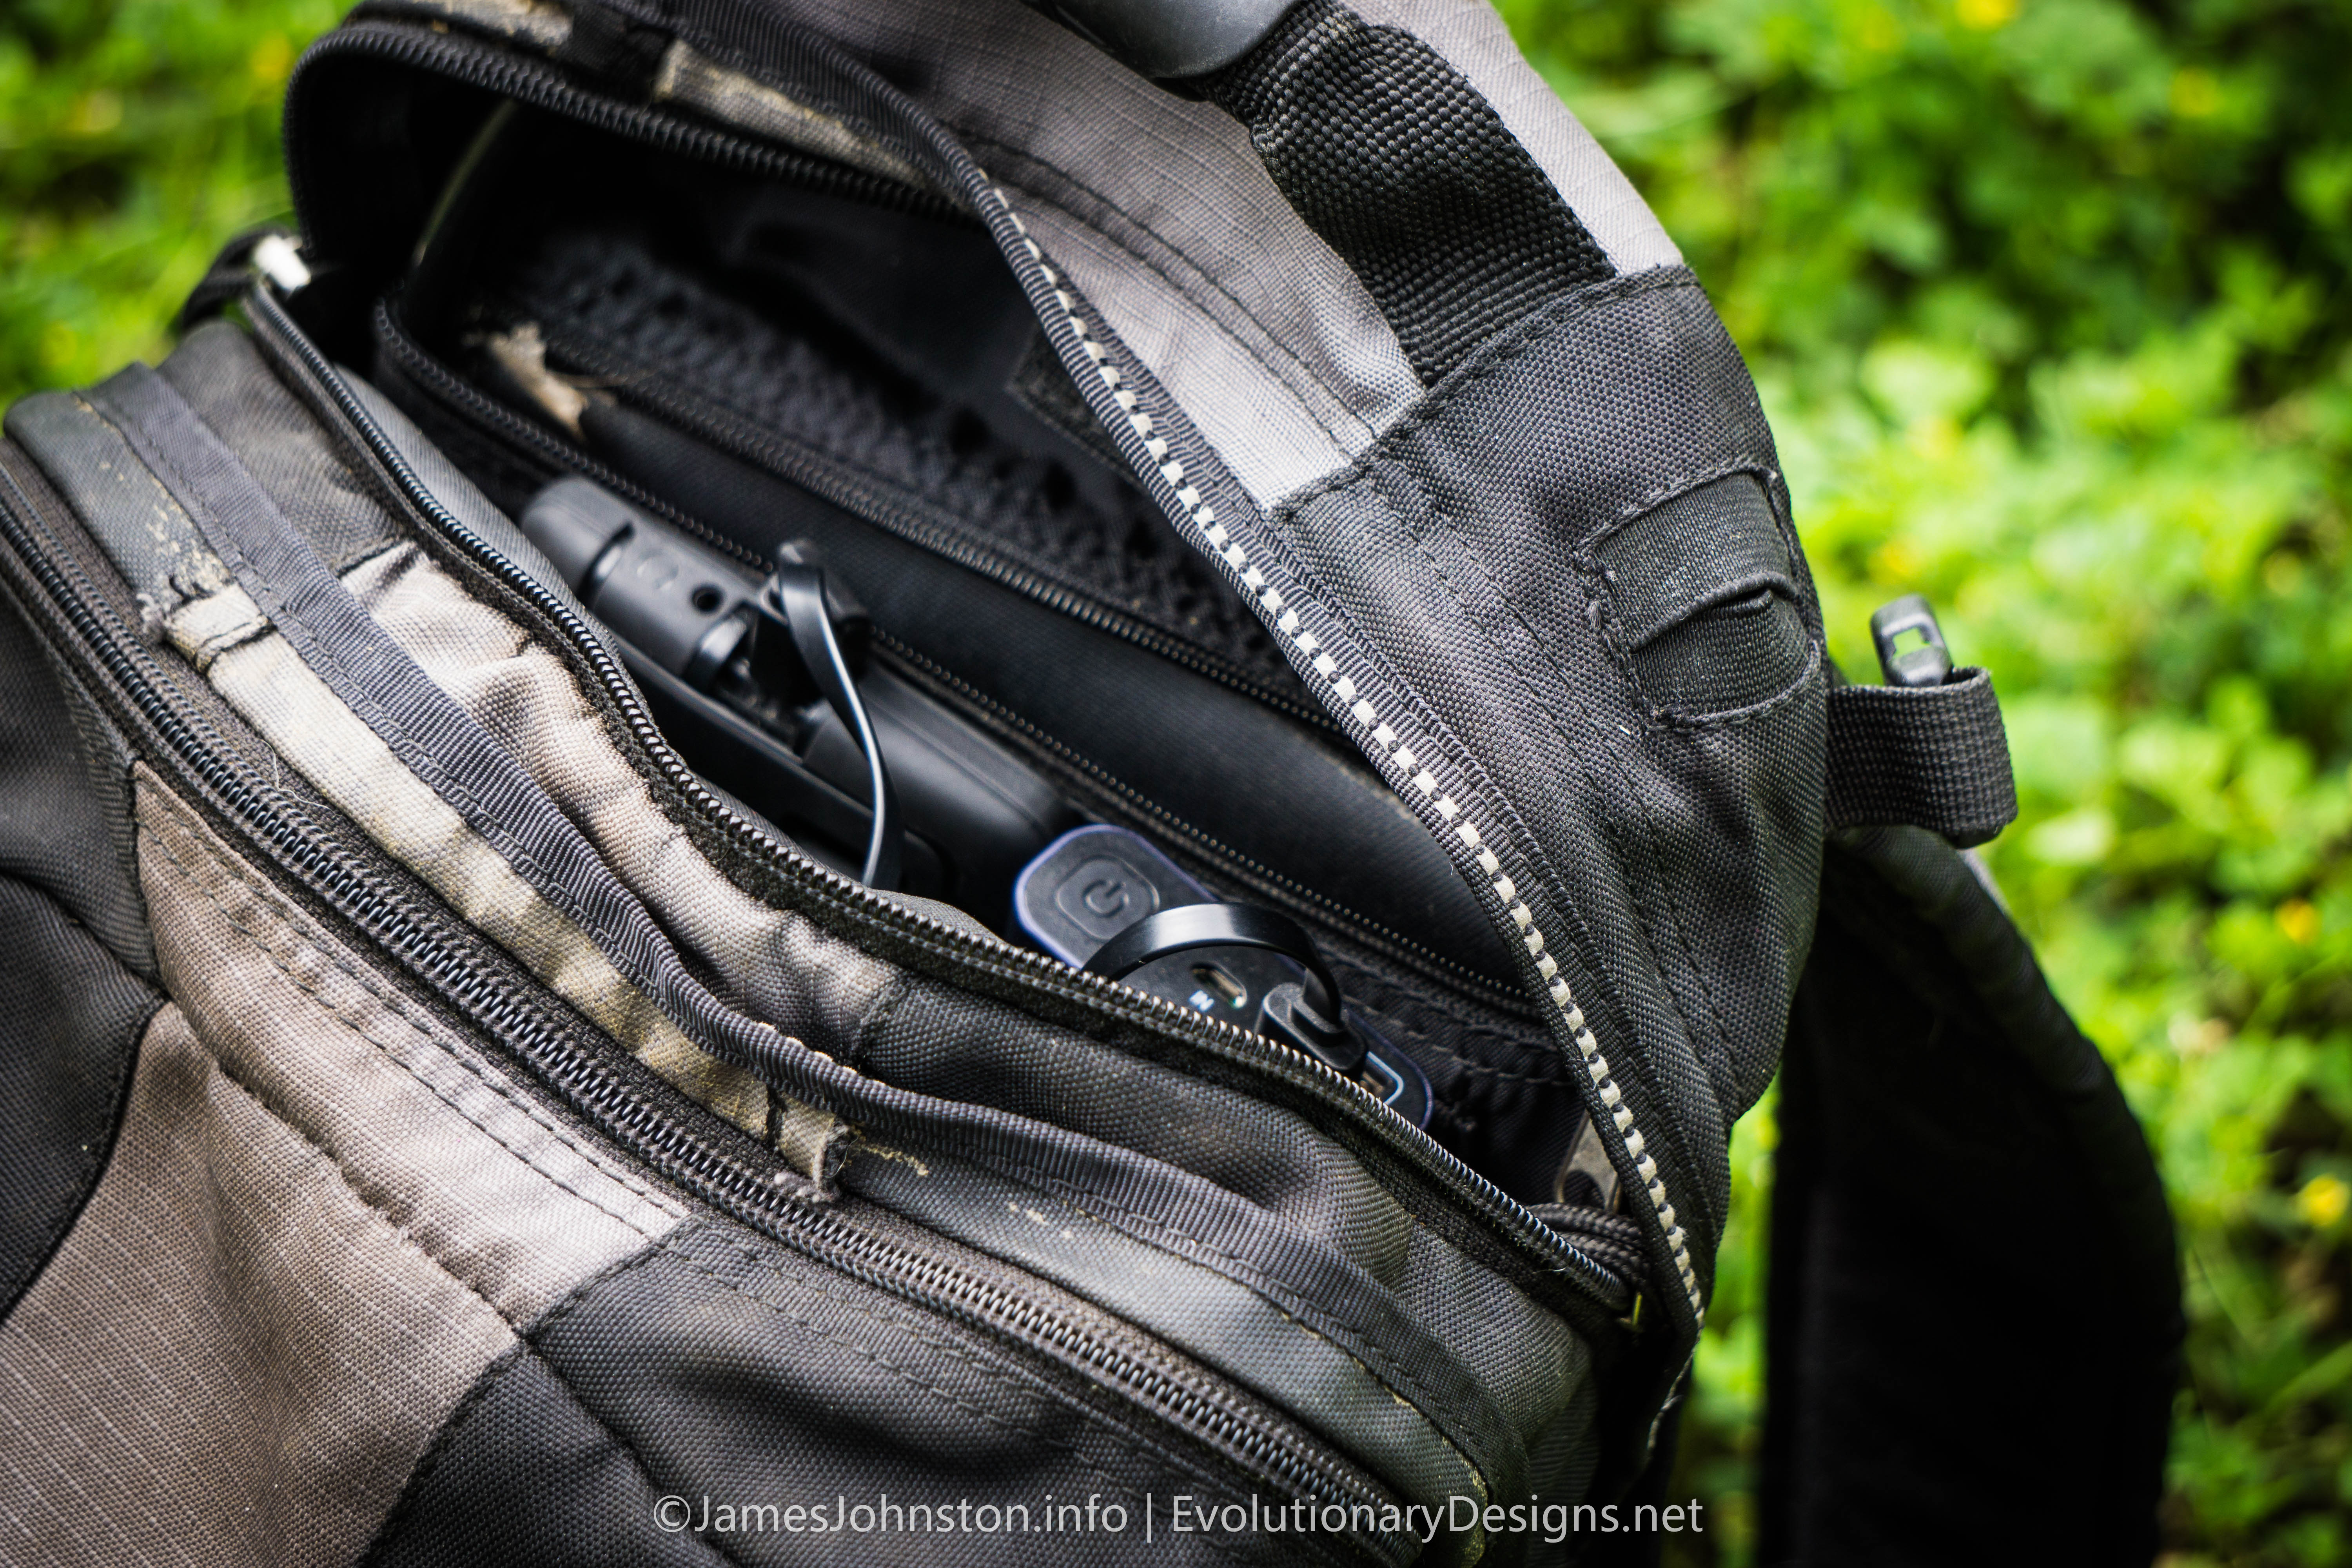 BlitzWolf BW-P5 15600mAh Quick Charge 3.0 Dual USB Power Bank charging in a small backpack pocket